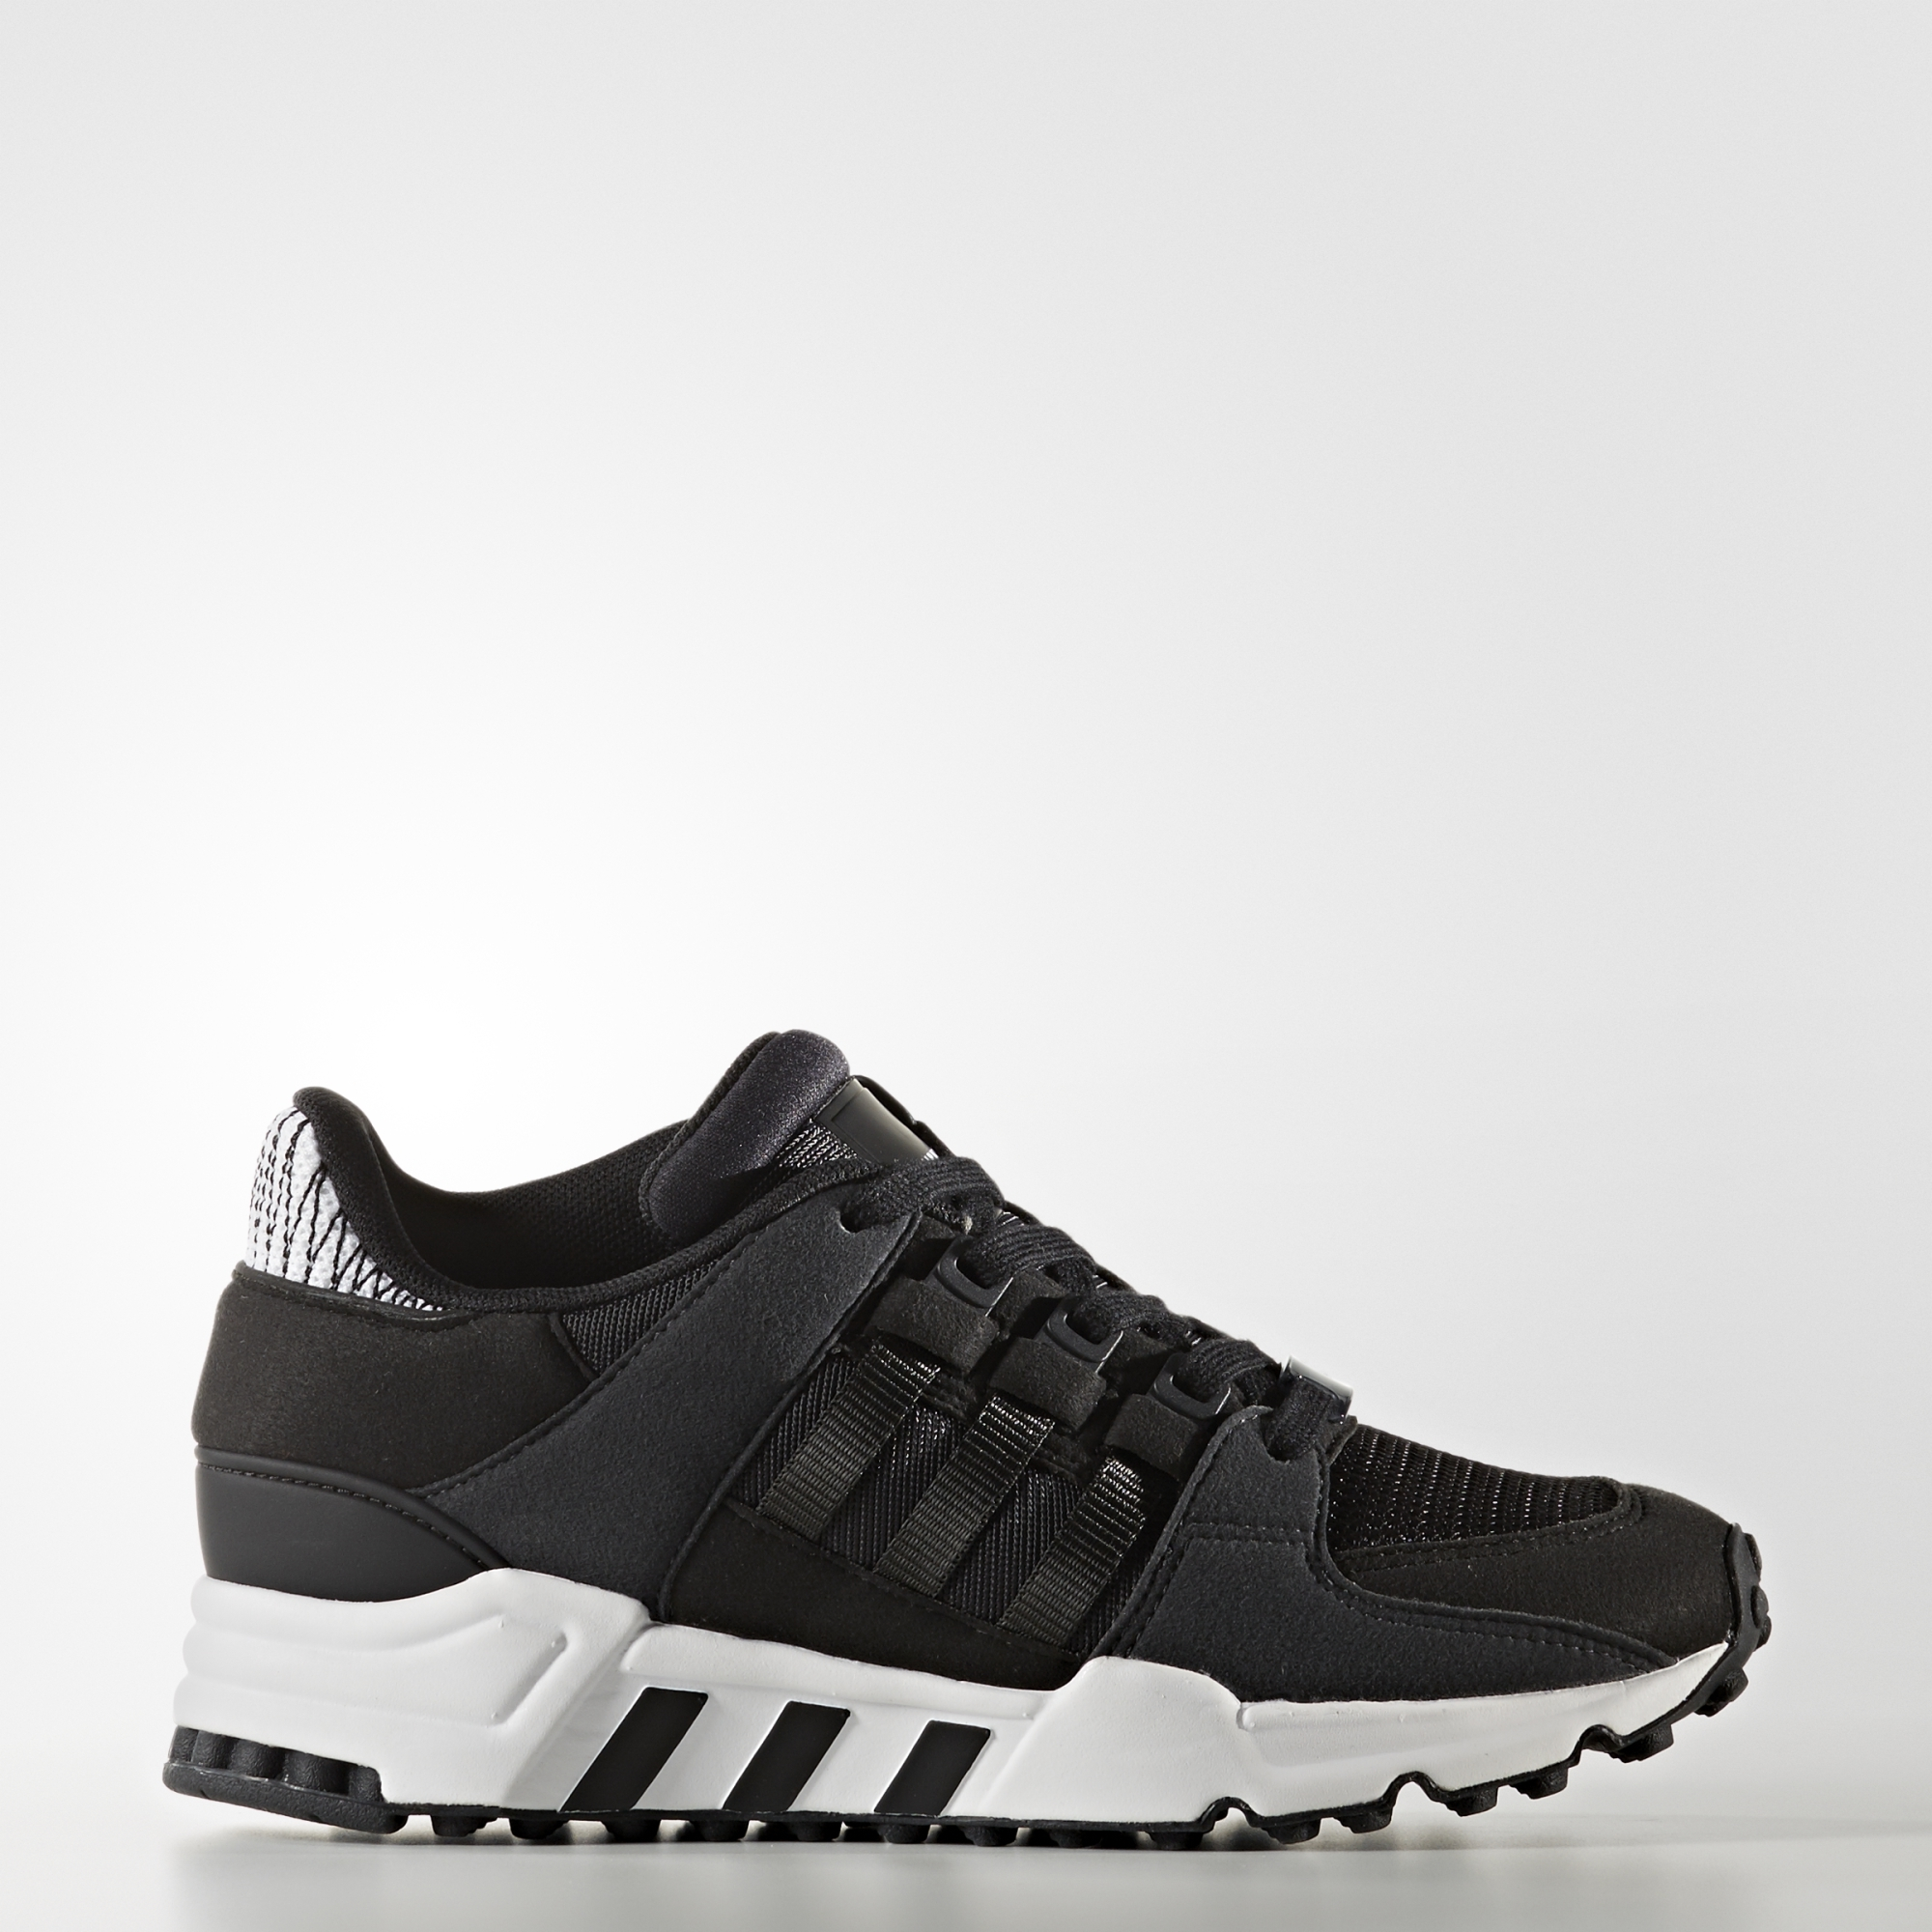 new adidas shoes 2016 ultra boost black adidas gazelle kids 13